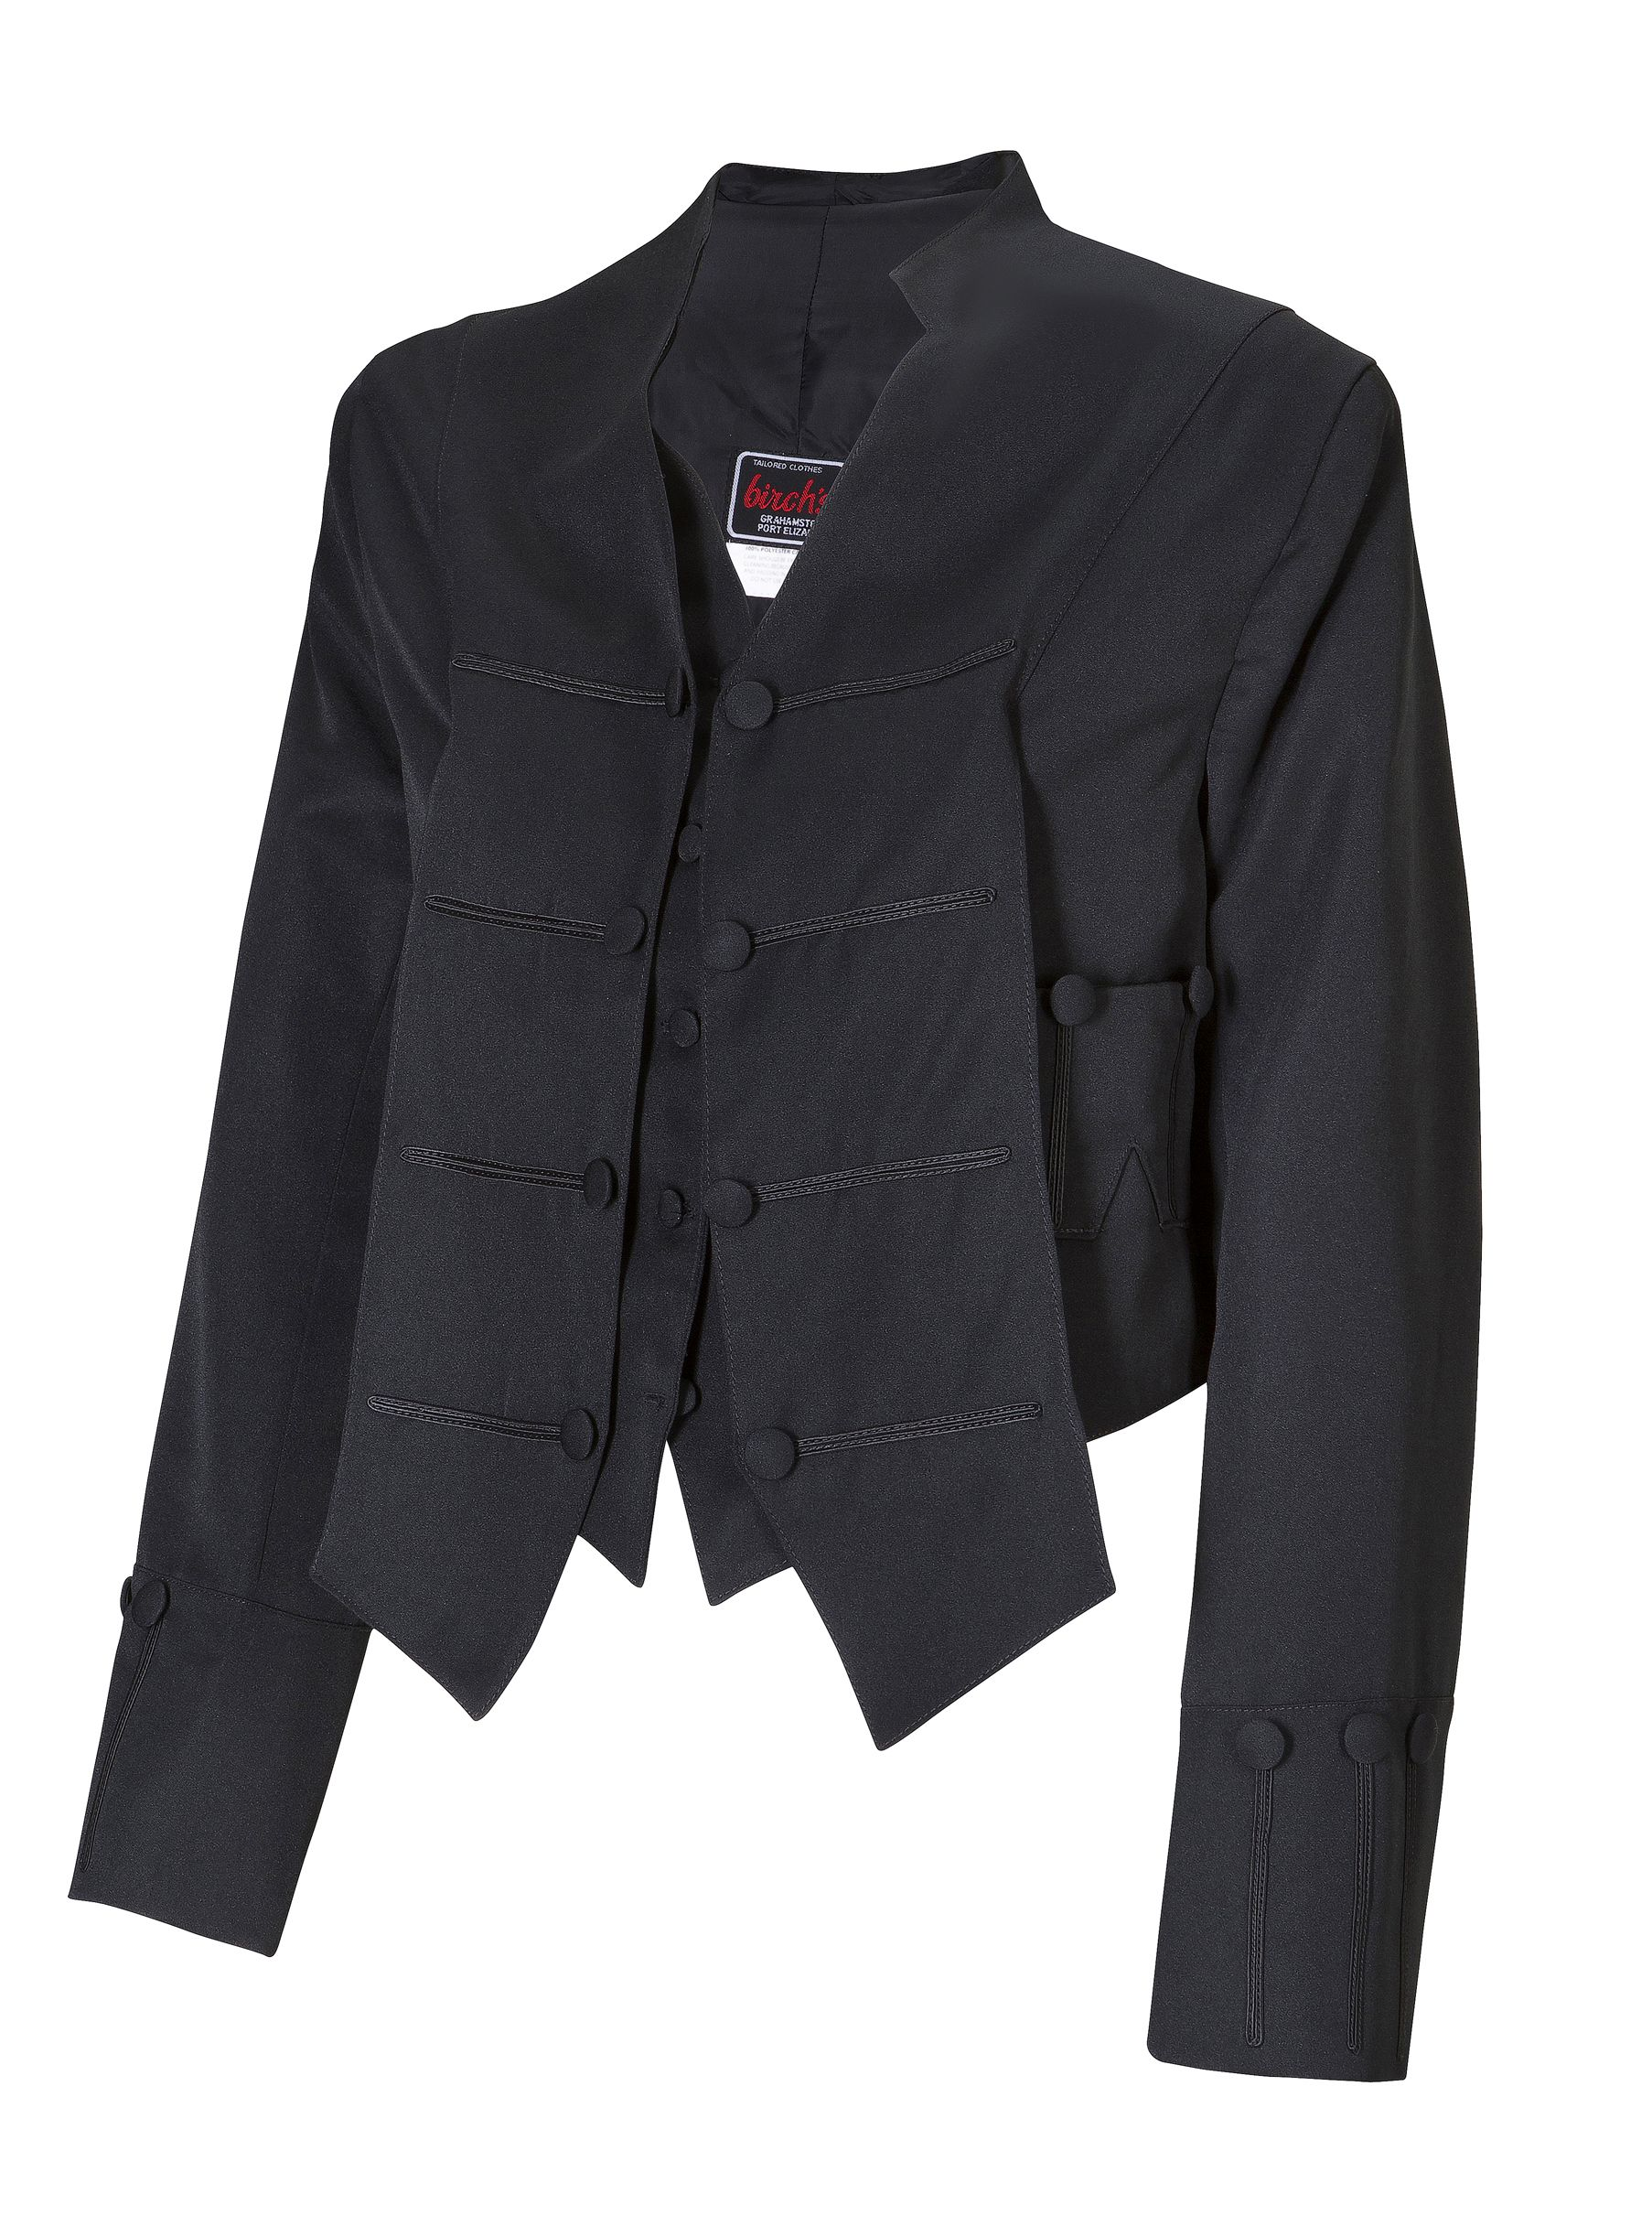 ee7bdd819f9 Senior Counsels Waistcoat - Polyester Cashmere